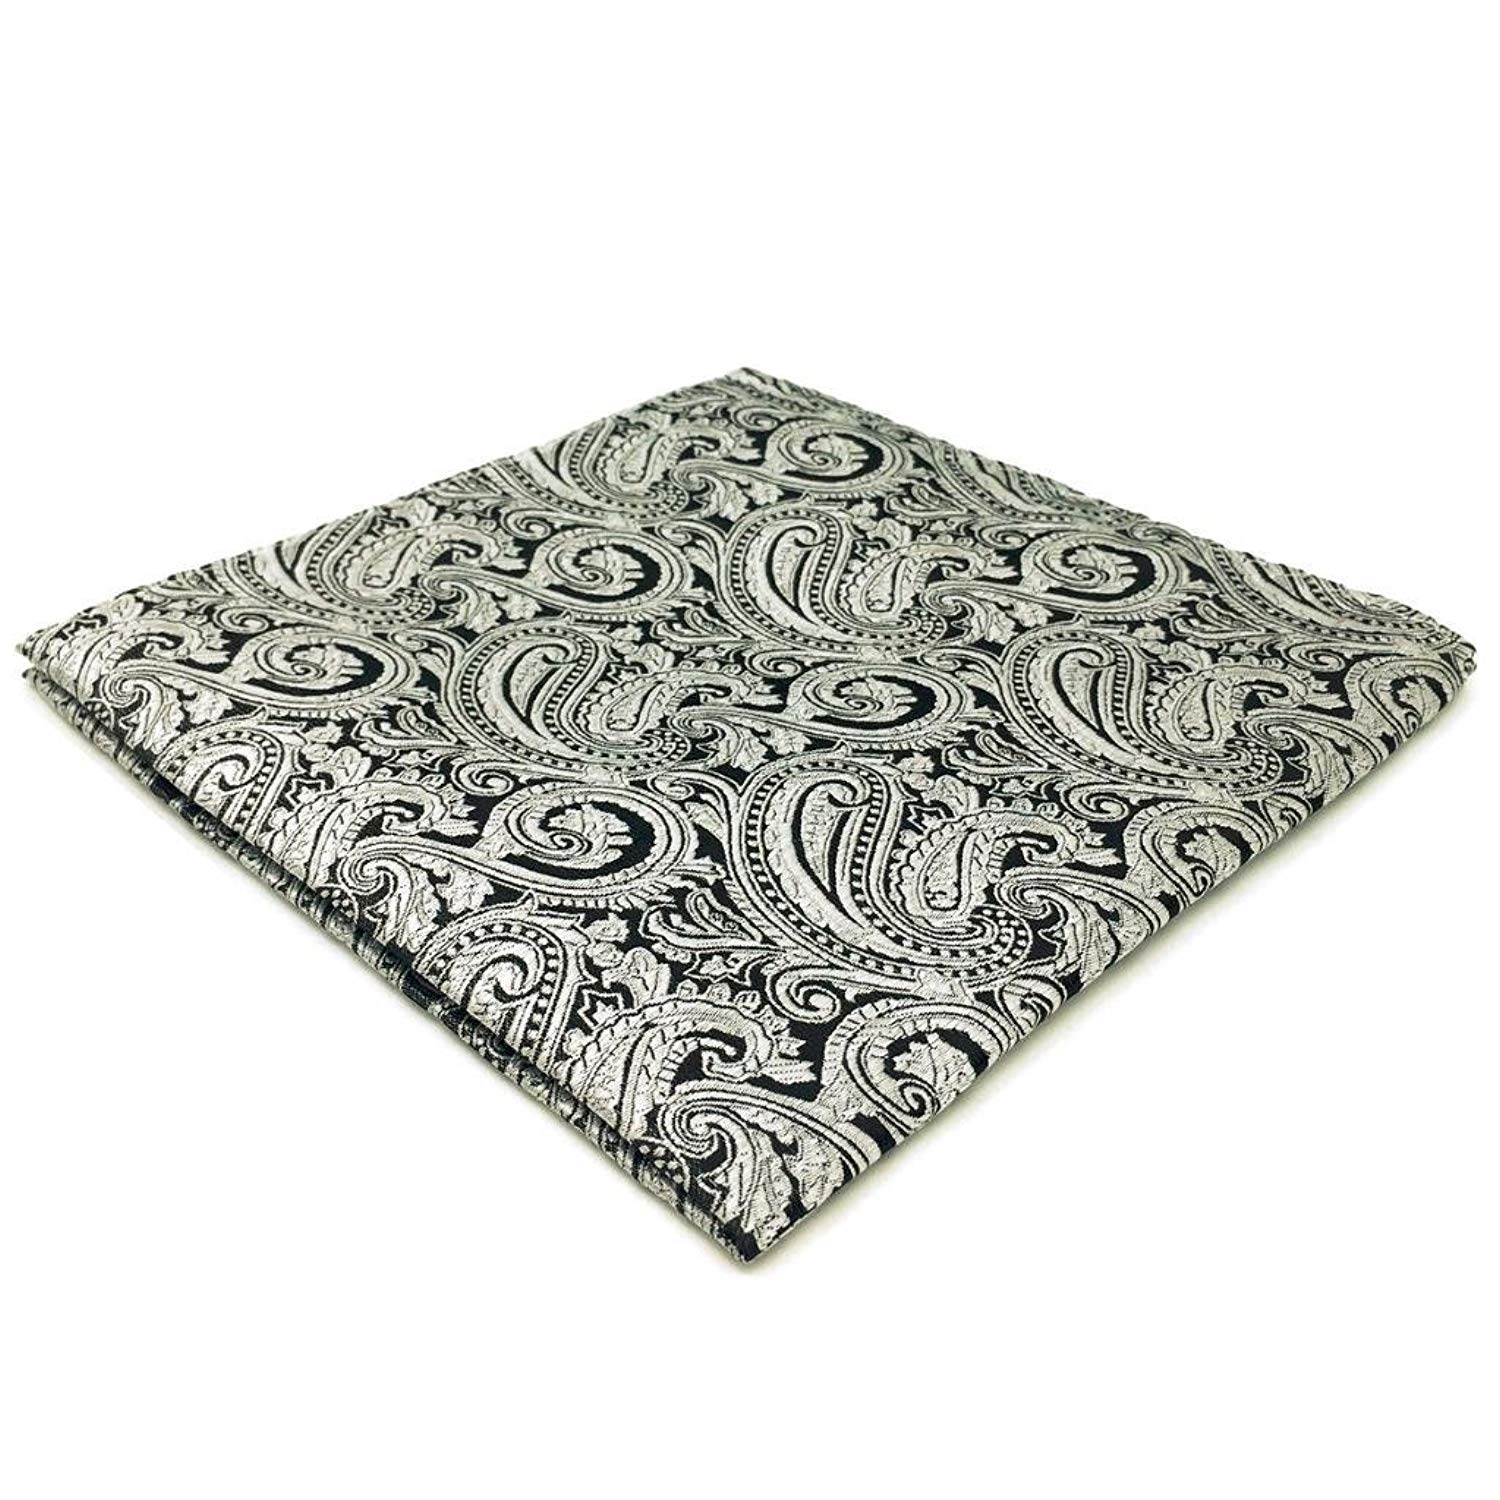 SHLAX/&WING Luxury Mens Neckties Silver Black Paisley for Suits Wedding Party Matching Pocket Square